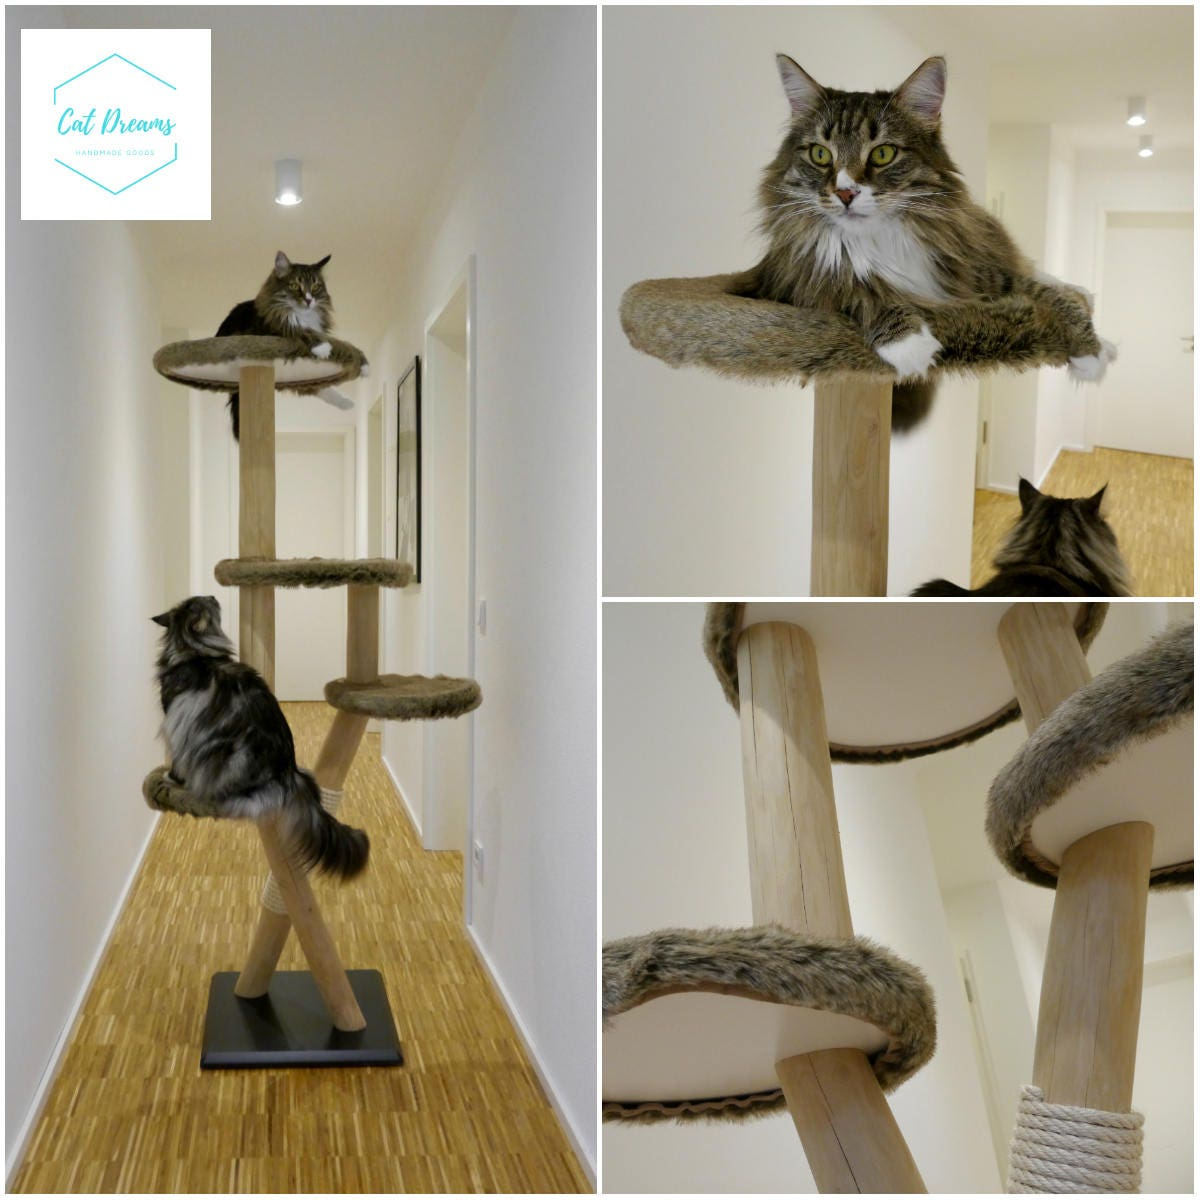 Arbre a chat naturel fashion designs - Arbre a chat en bois naturel ...